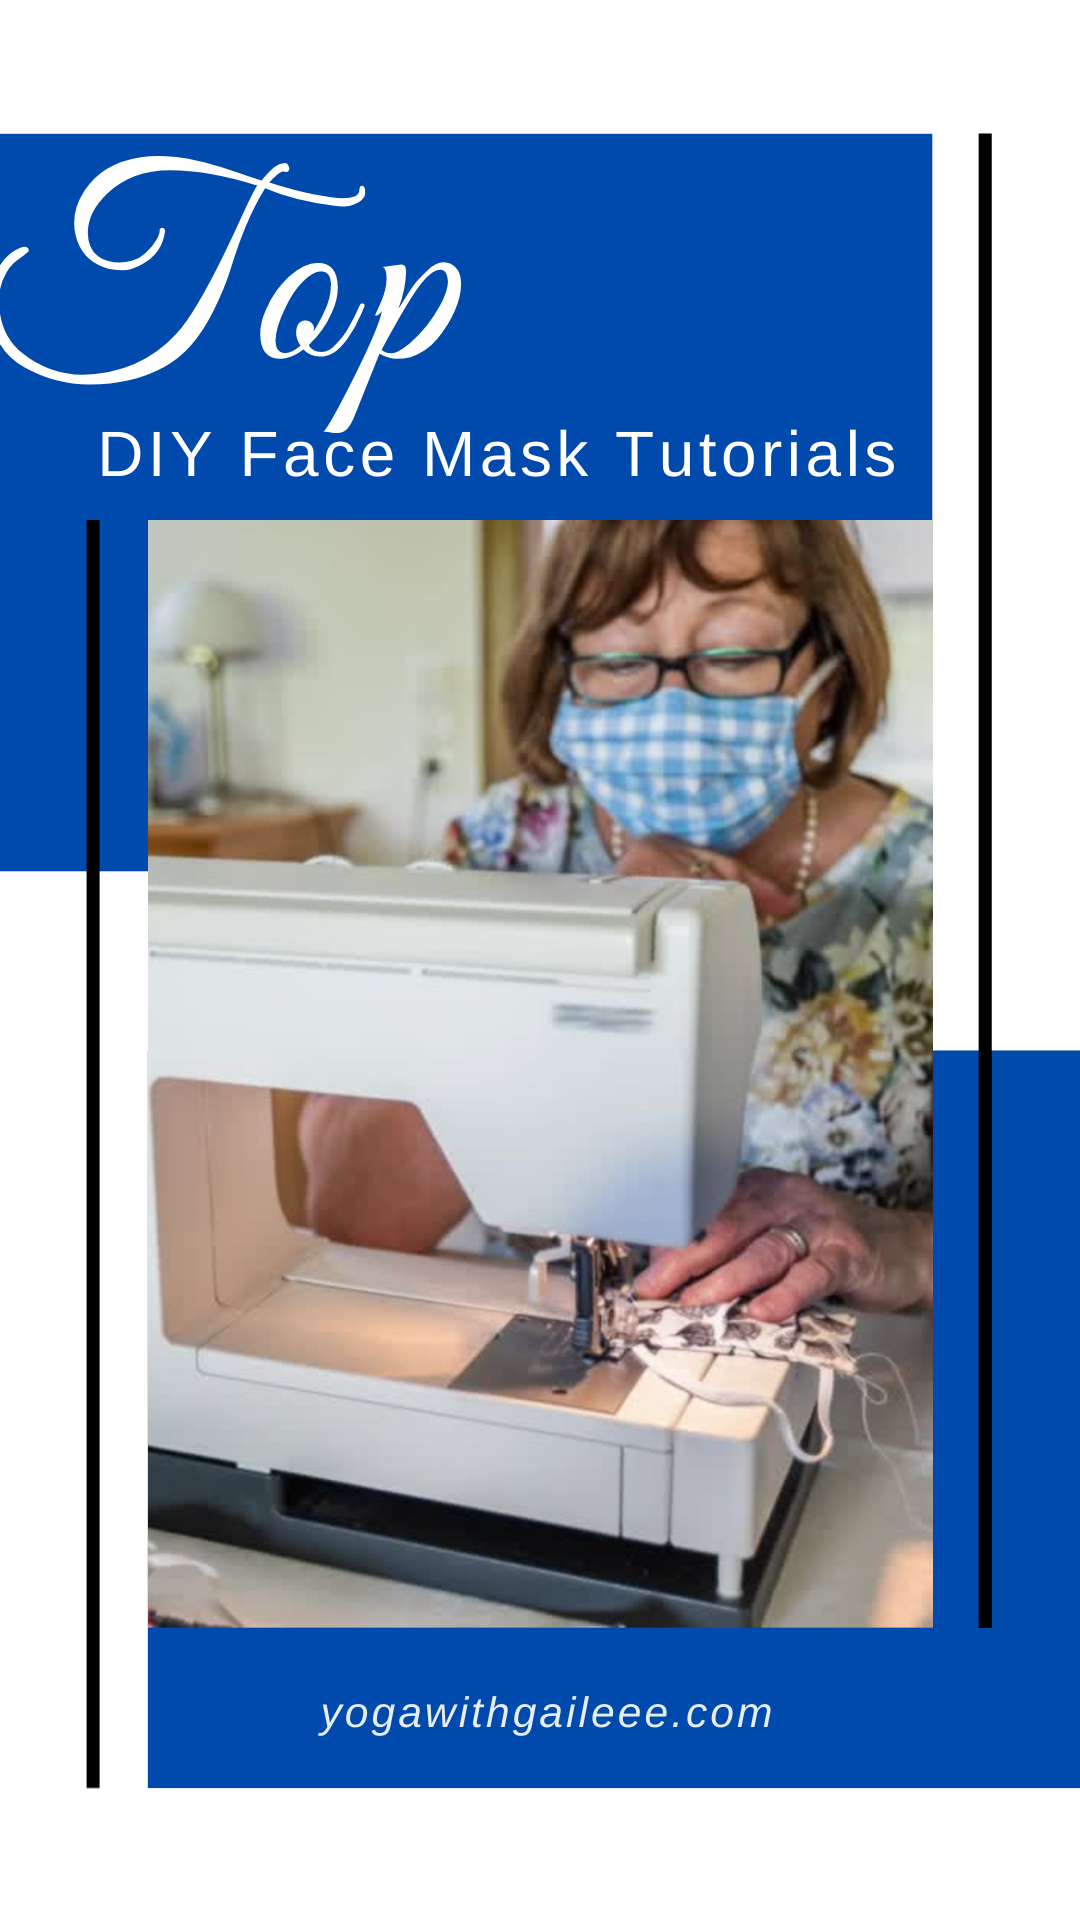 Top DIY Face Mask Covering Tutorial out there on the web!